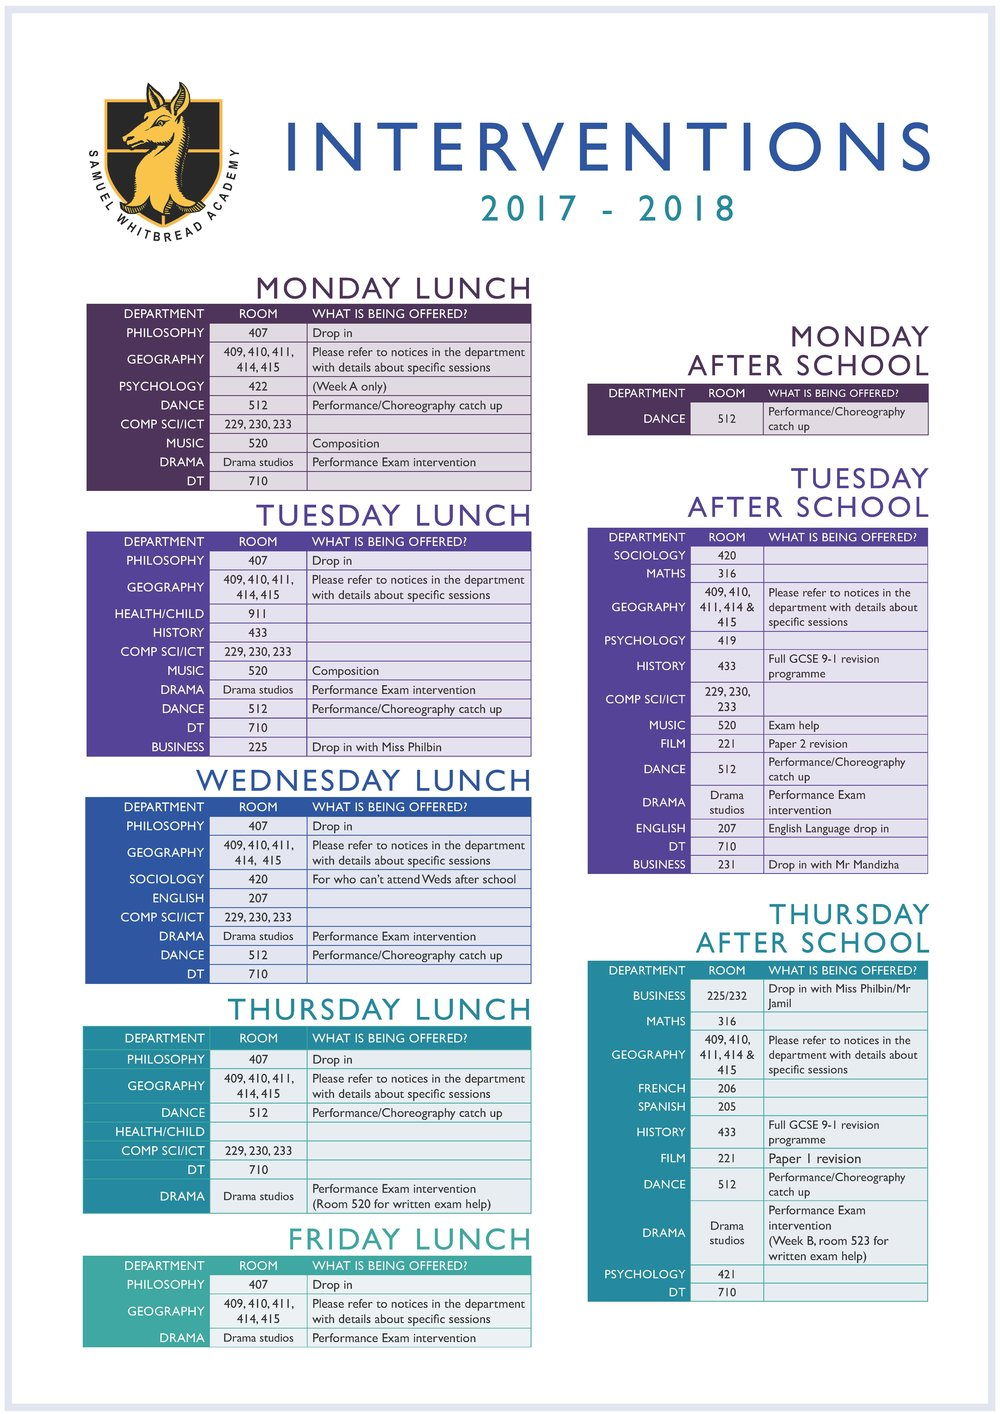 or click  here  to see the full size intervention timetable.